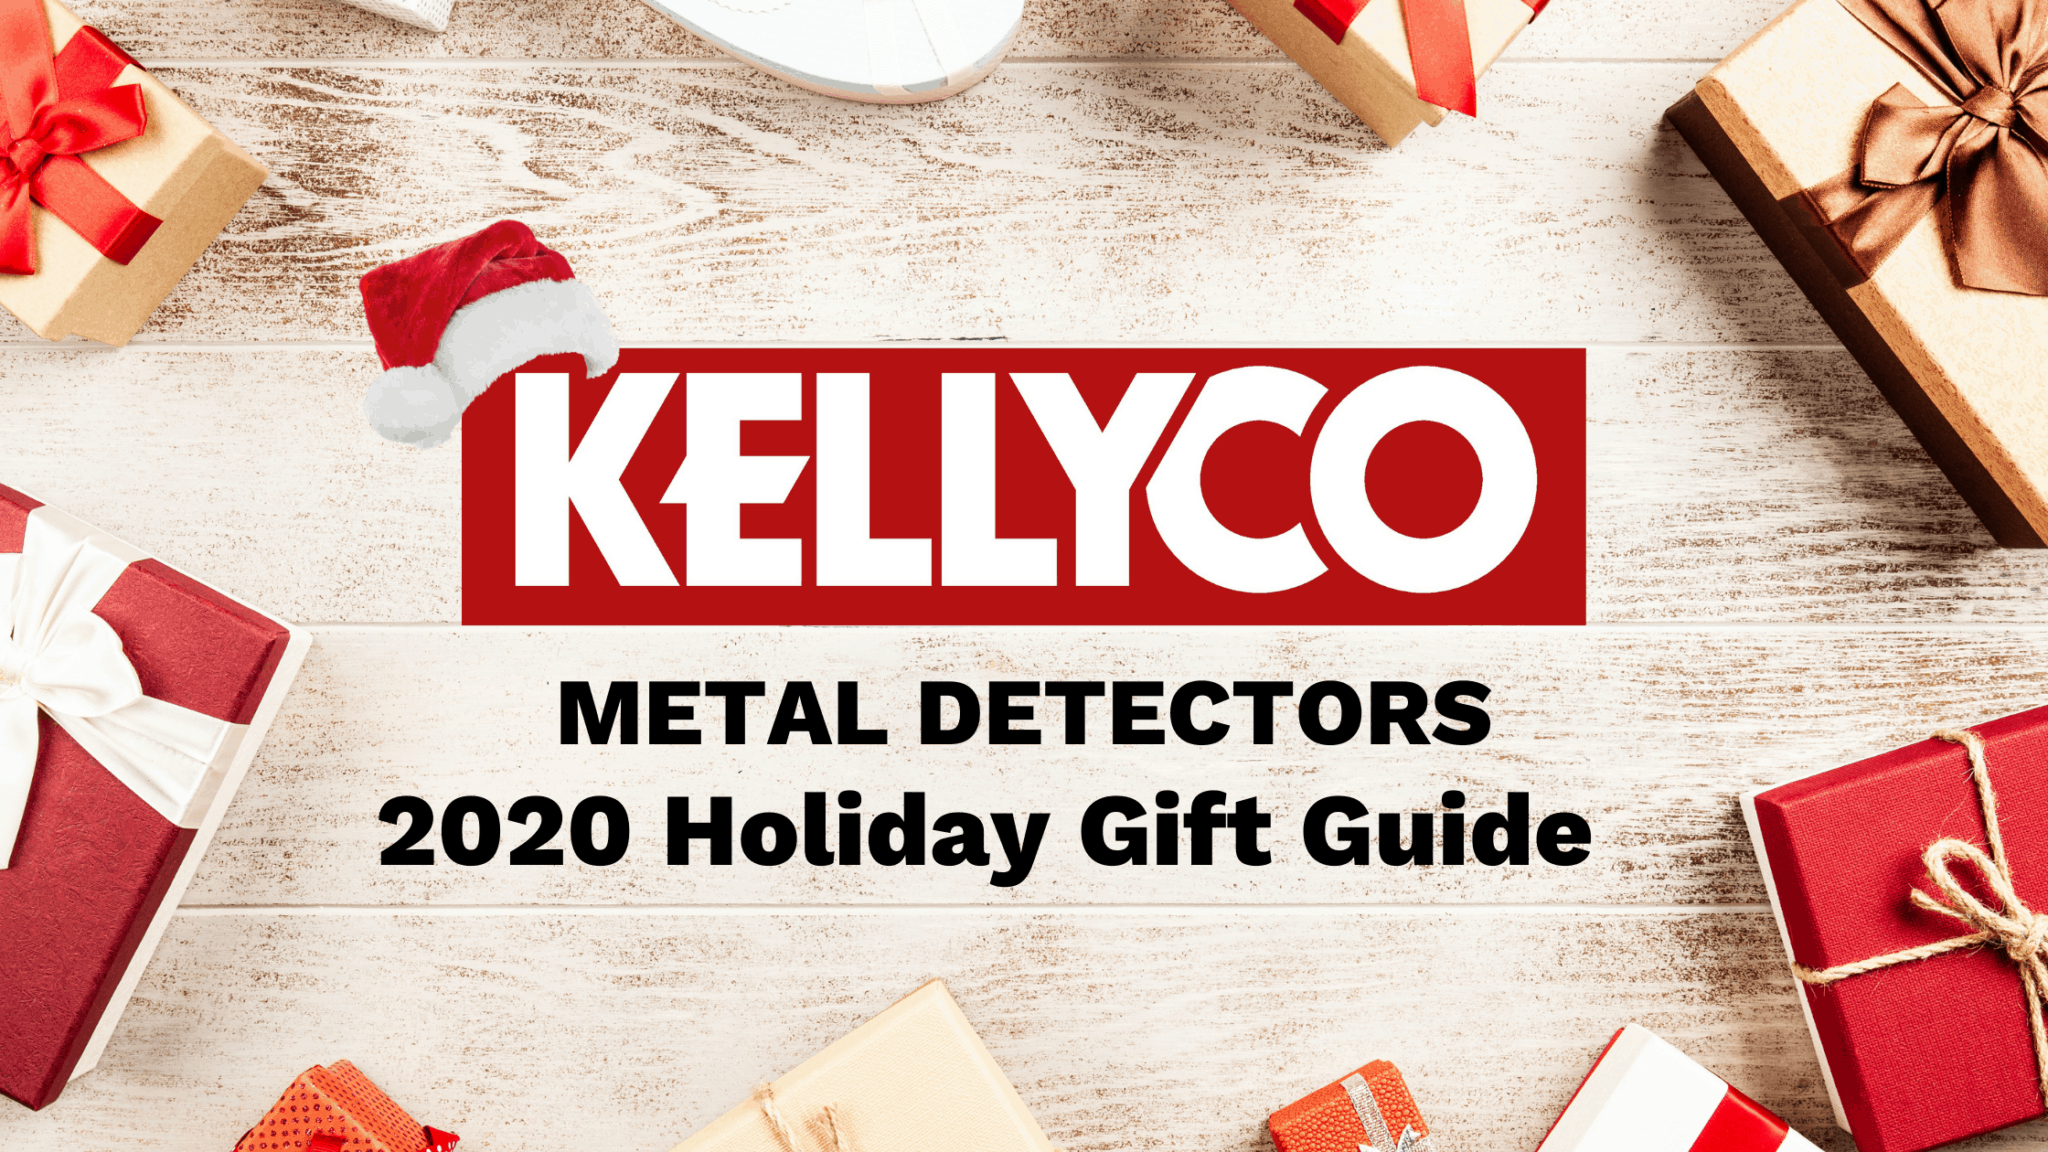 Holiday Gift Guide banner image from Kellyco Metal Detectors